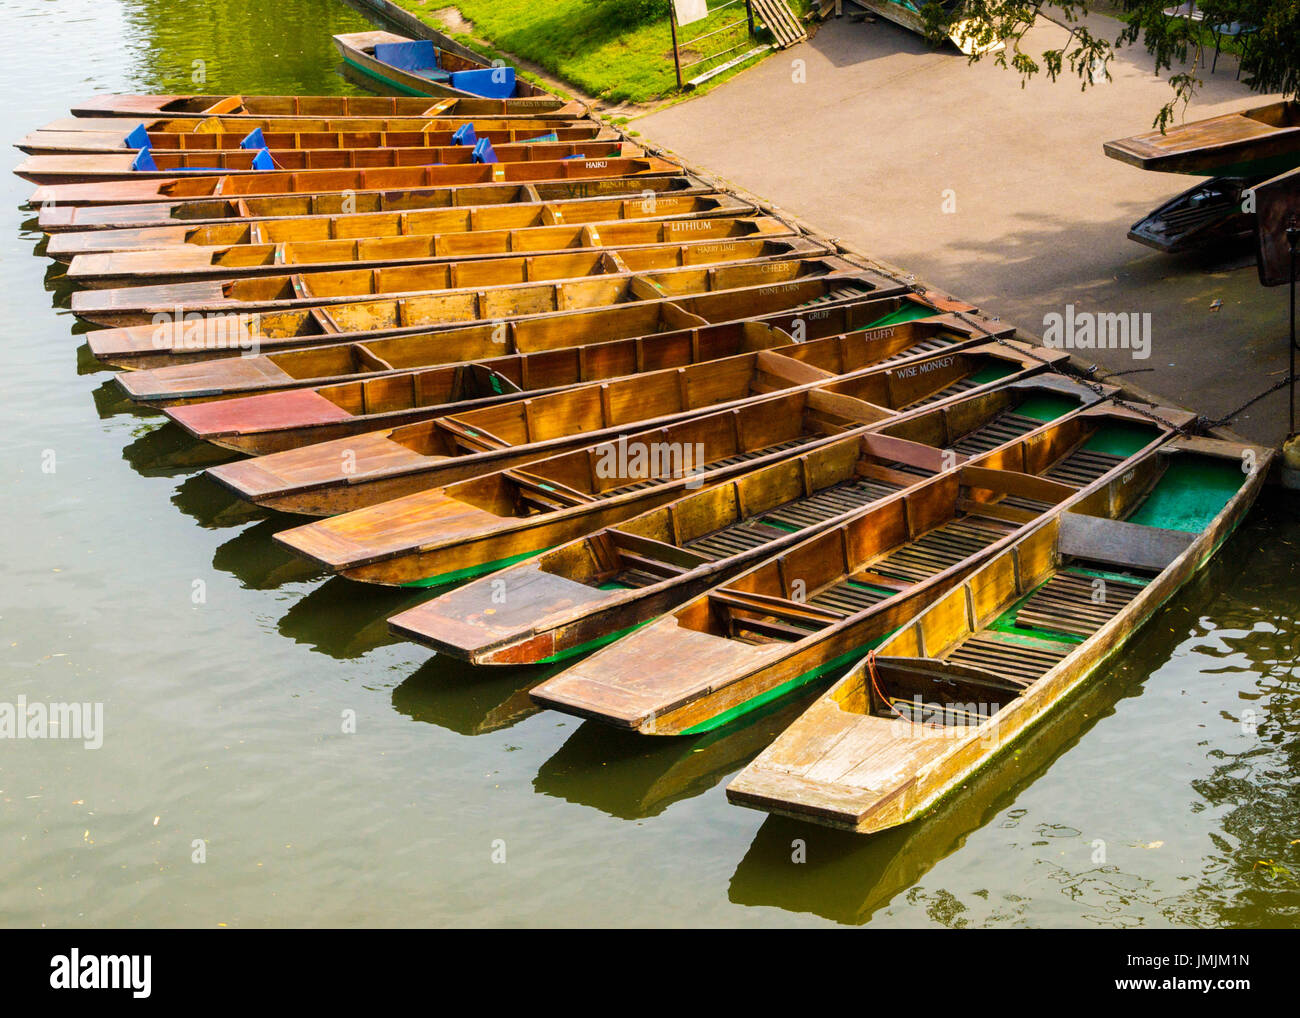 Waiting Punts on River Cam with Fanciful Names - Stock Image